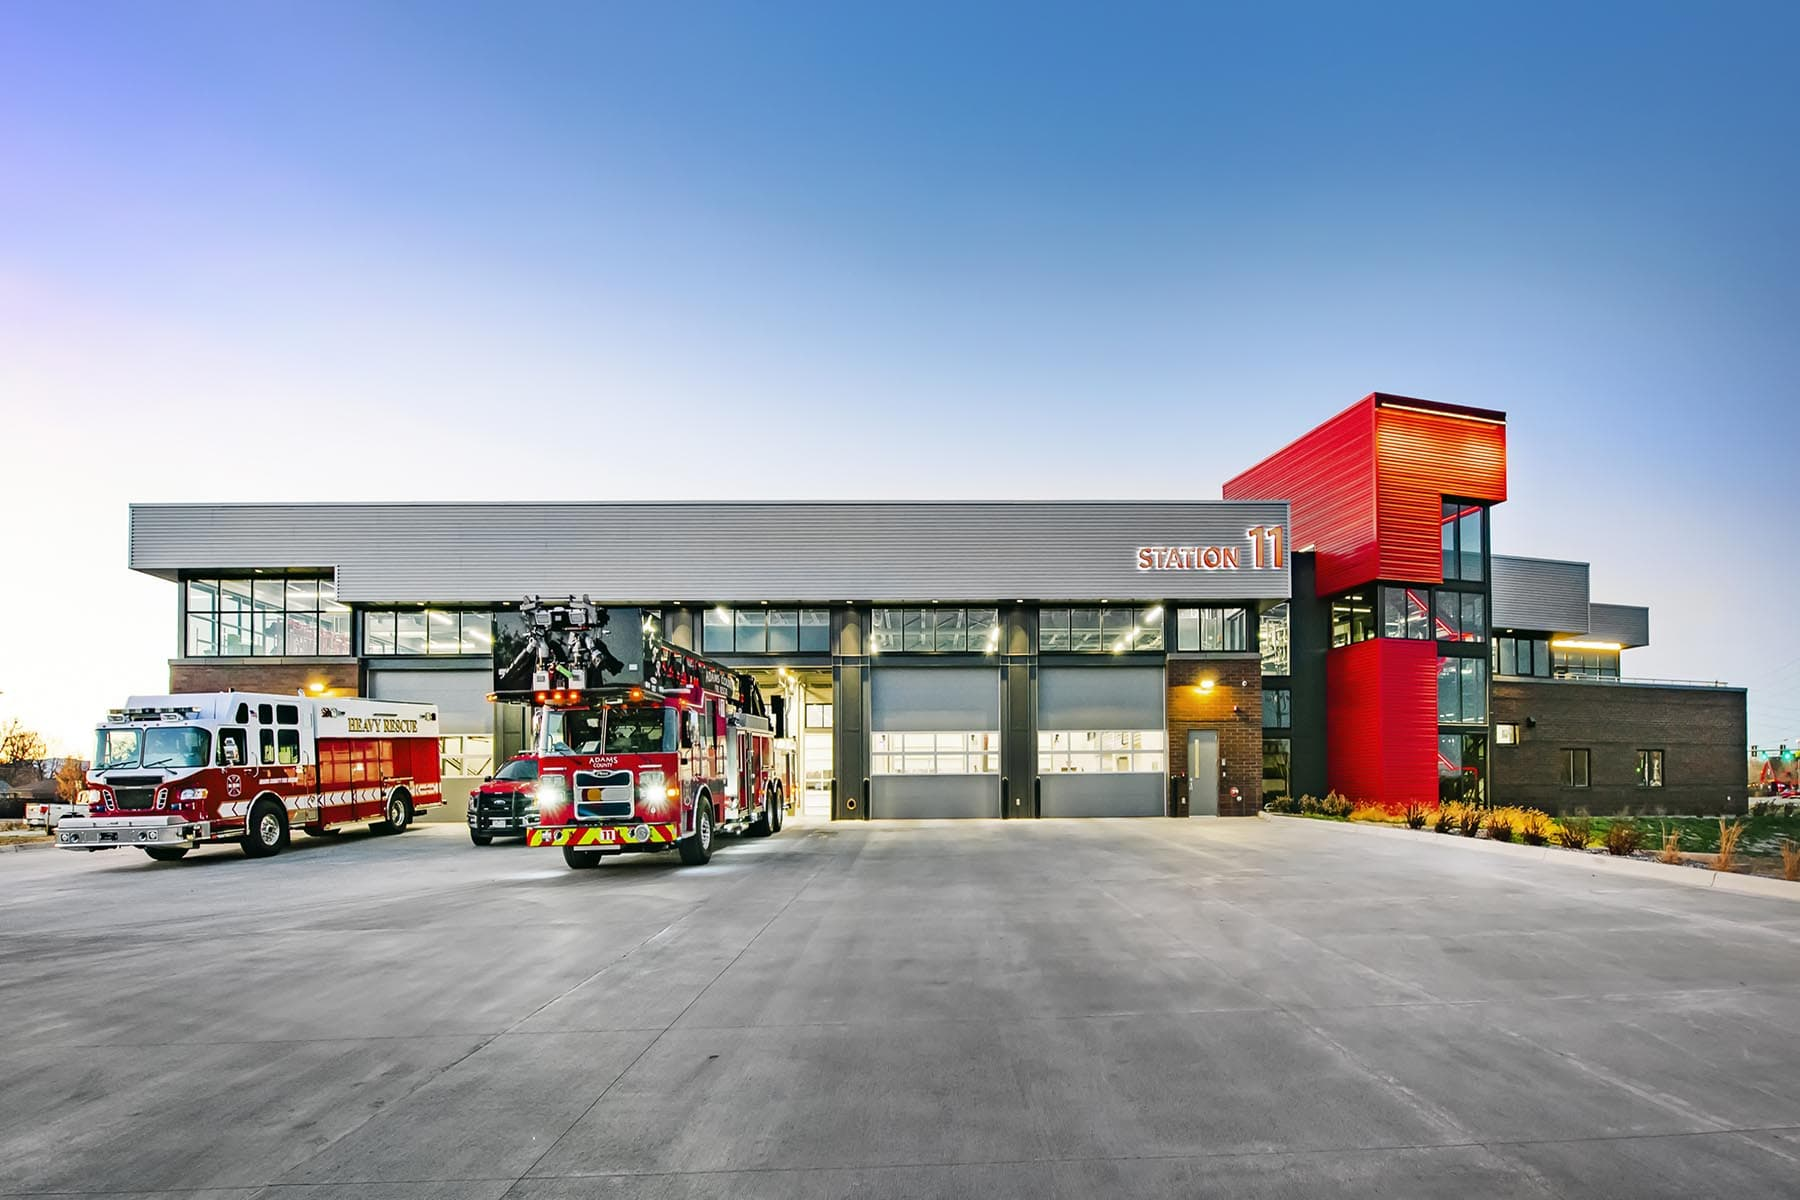 Street View of ACFR Station 11